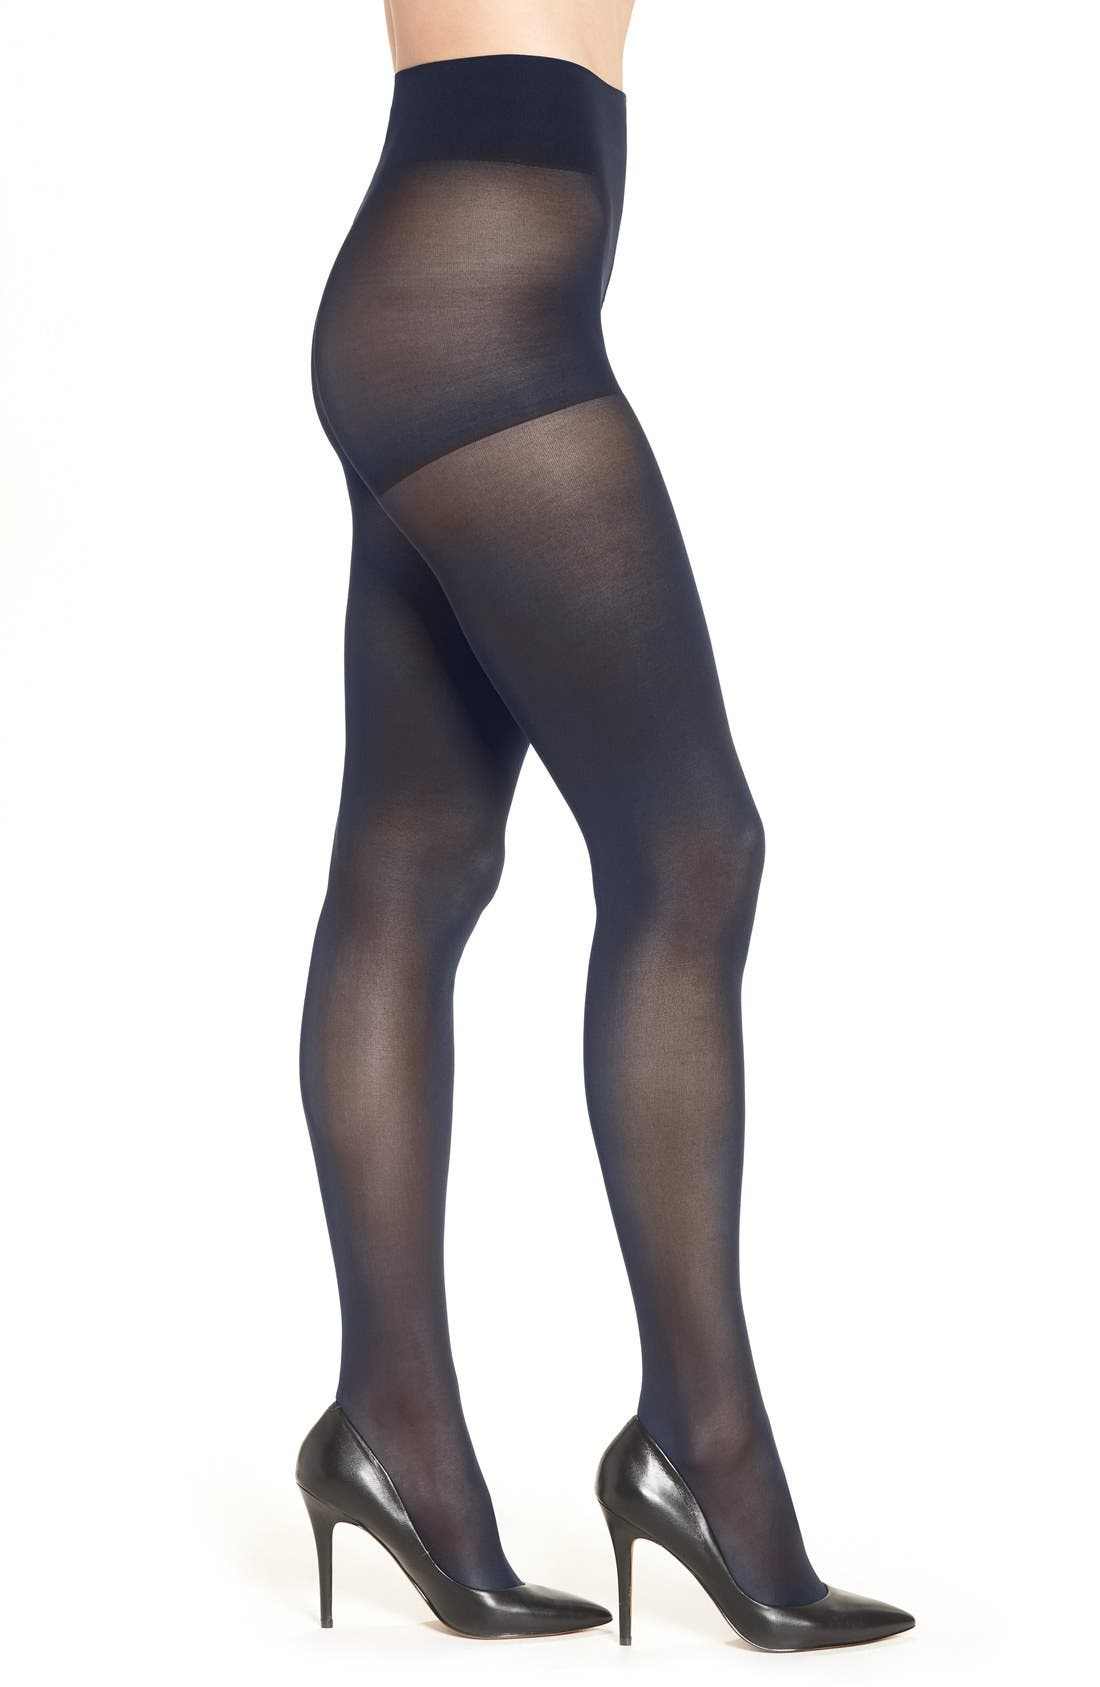 DKNY Opaque Control Top Tights (2 for $30)